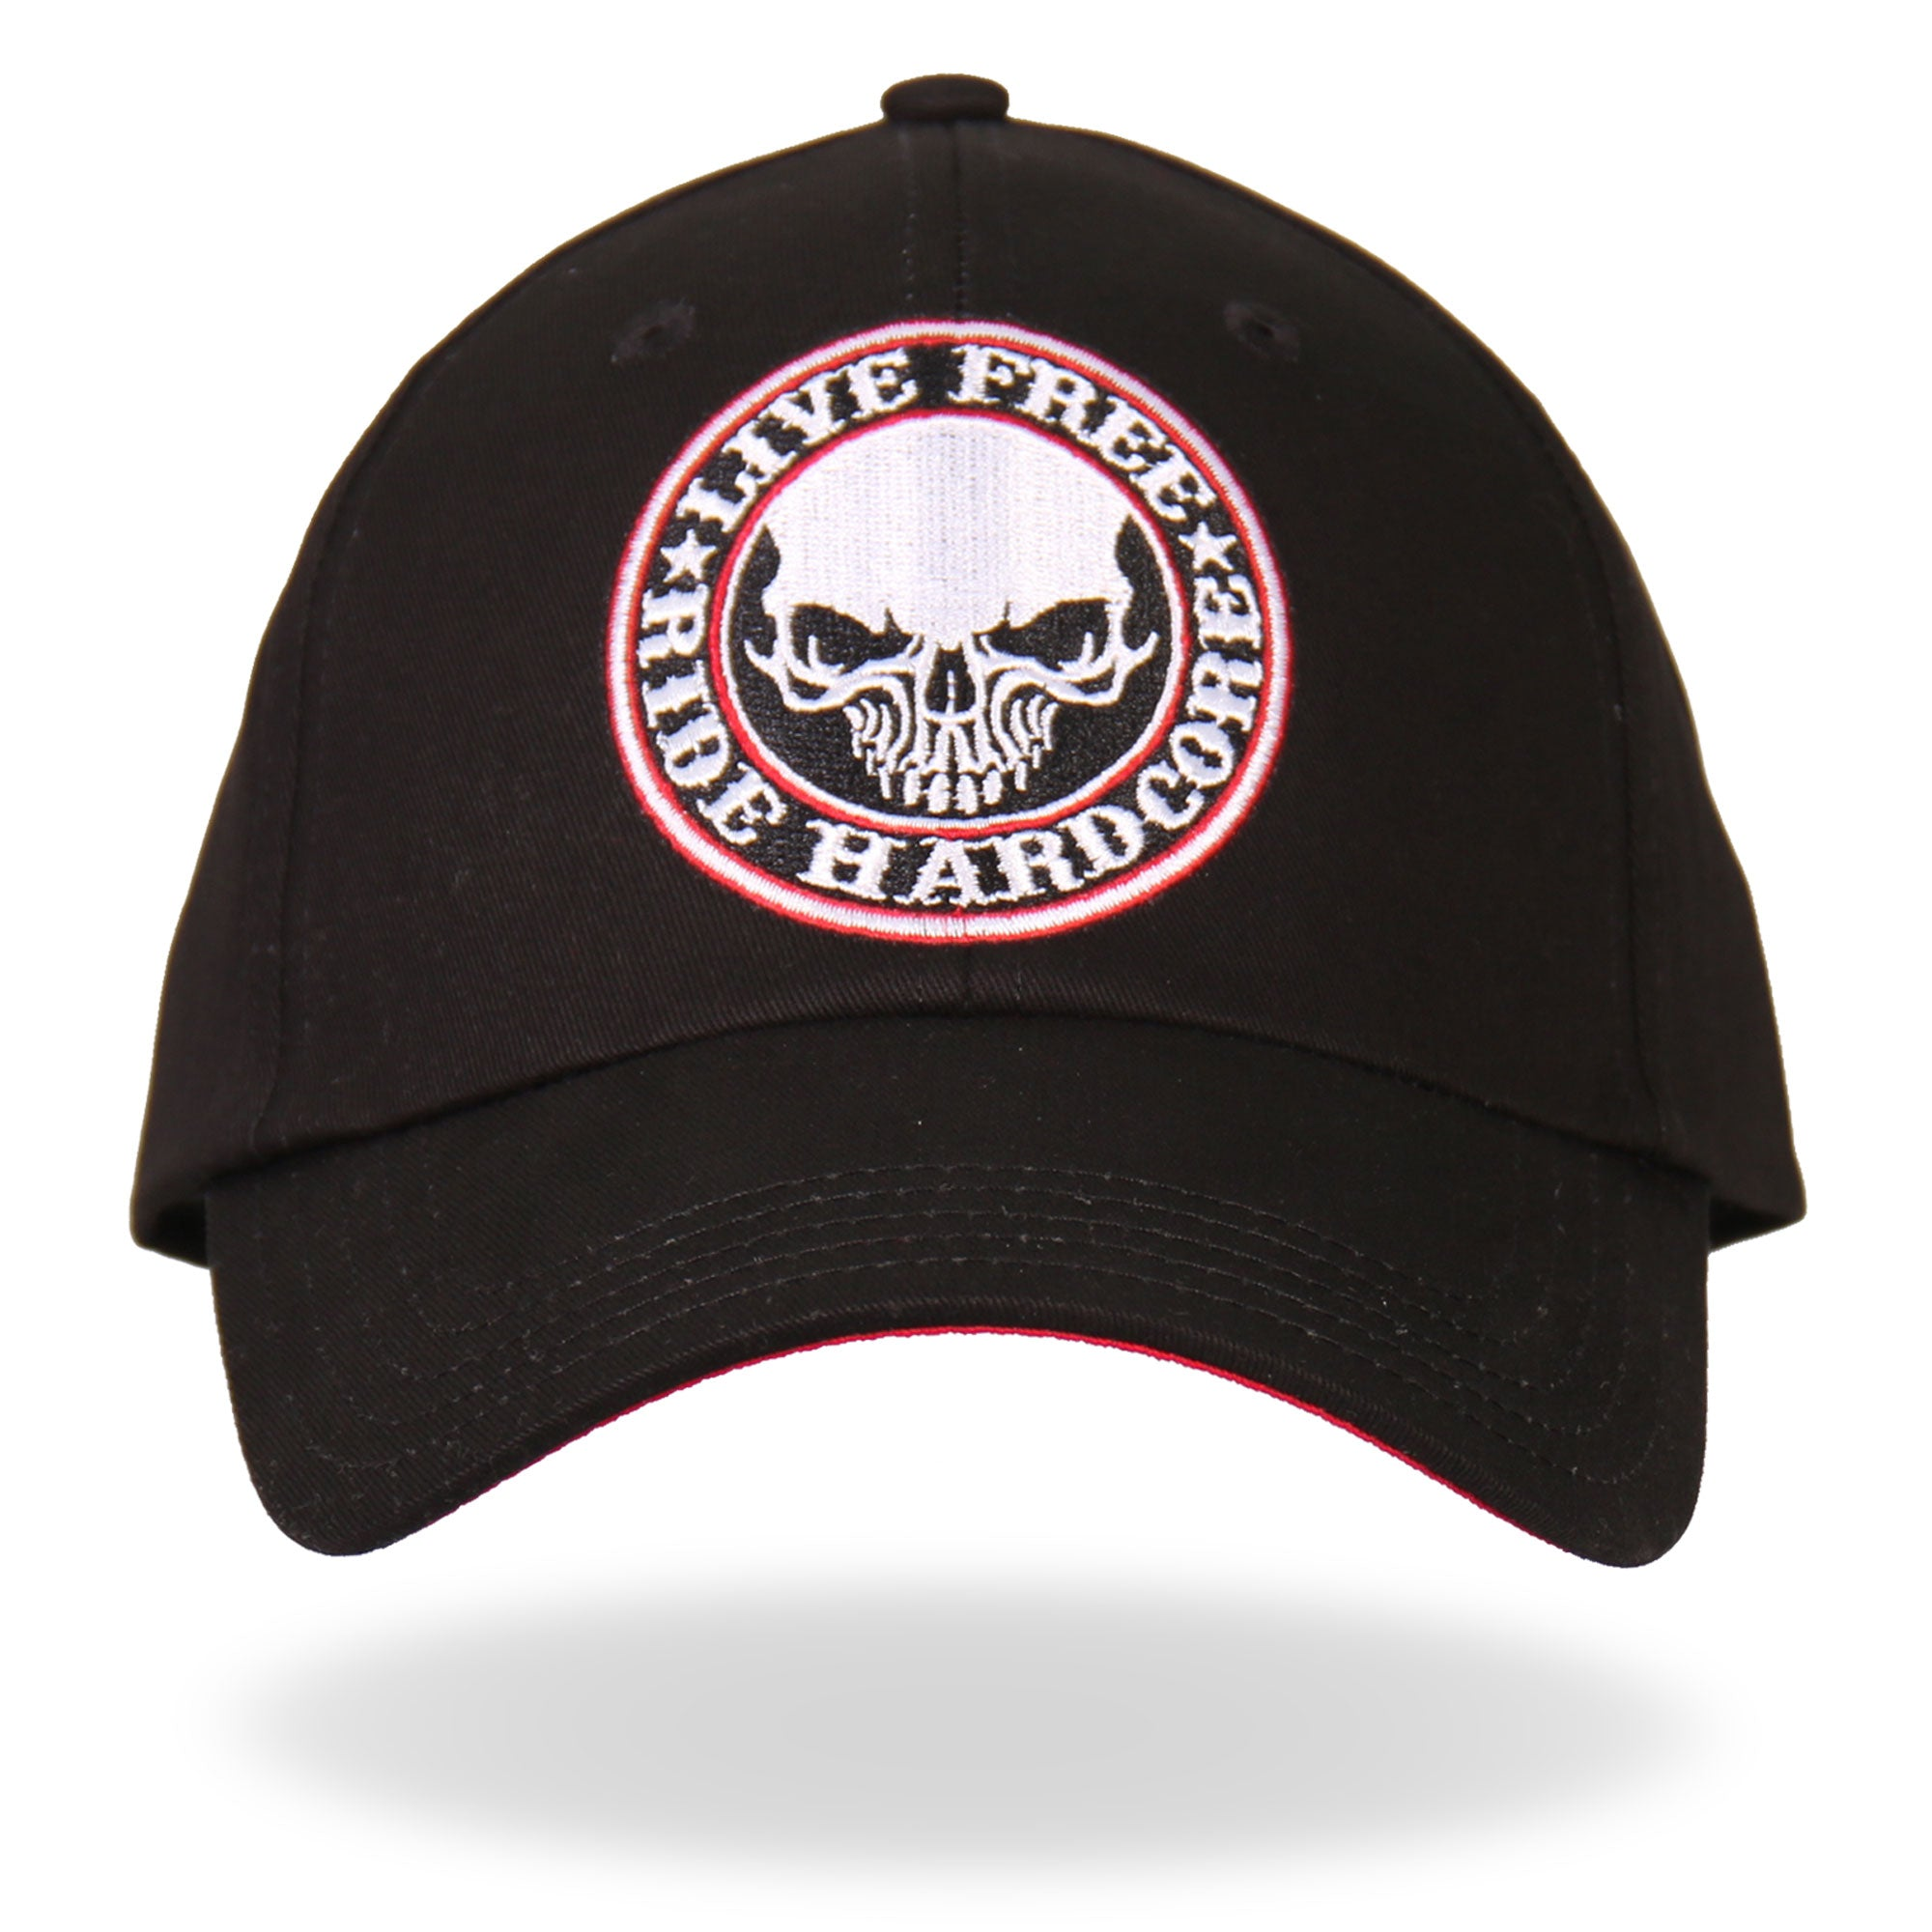 Hot Leathers Live Free Ride Hardcore Skull Baseball Cap